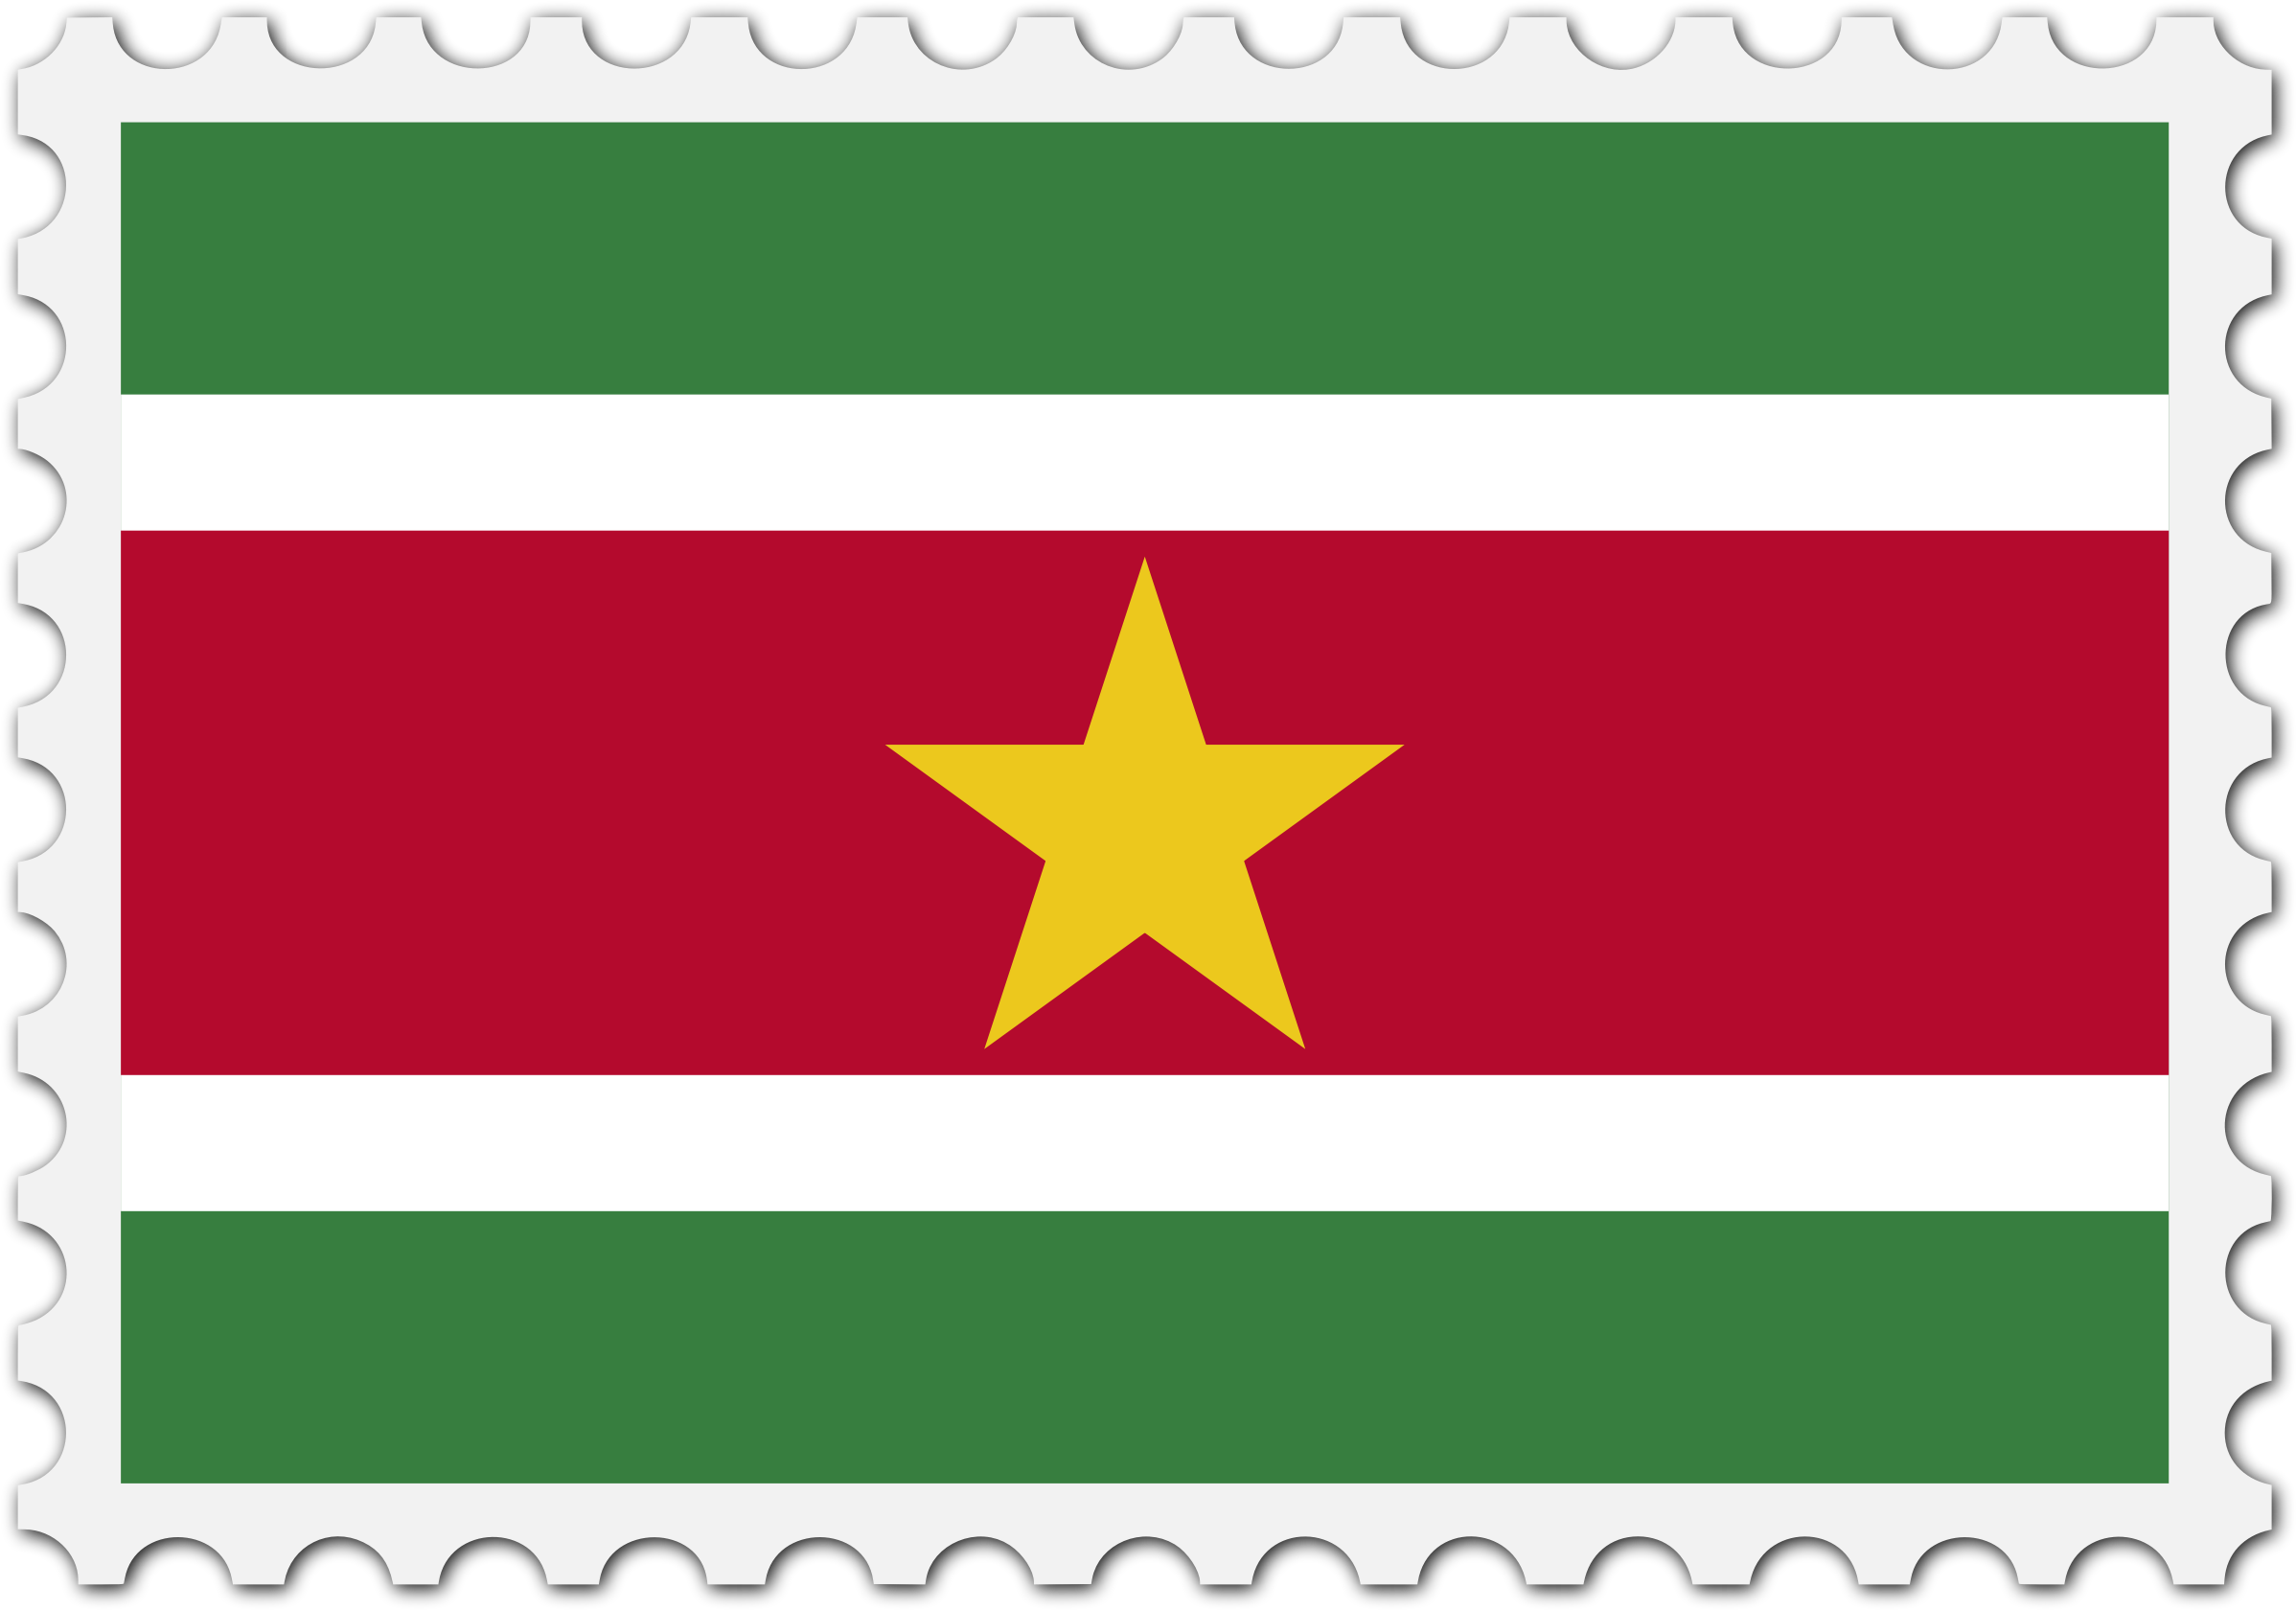 Suriname flag stamp by Firkin